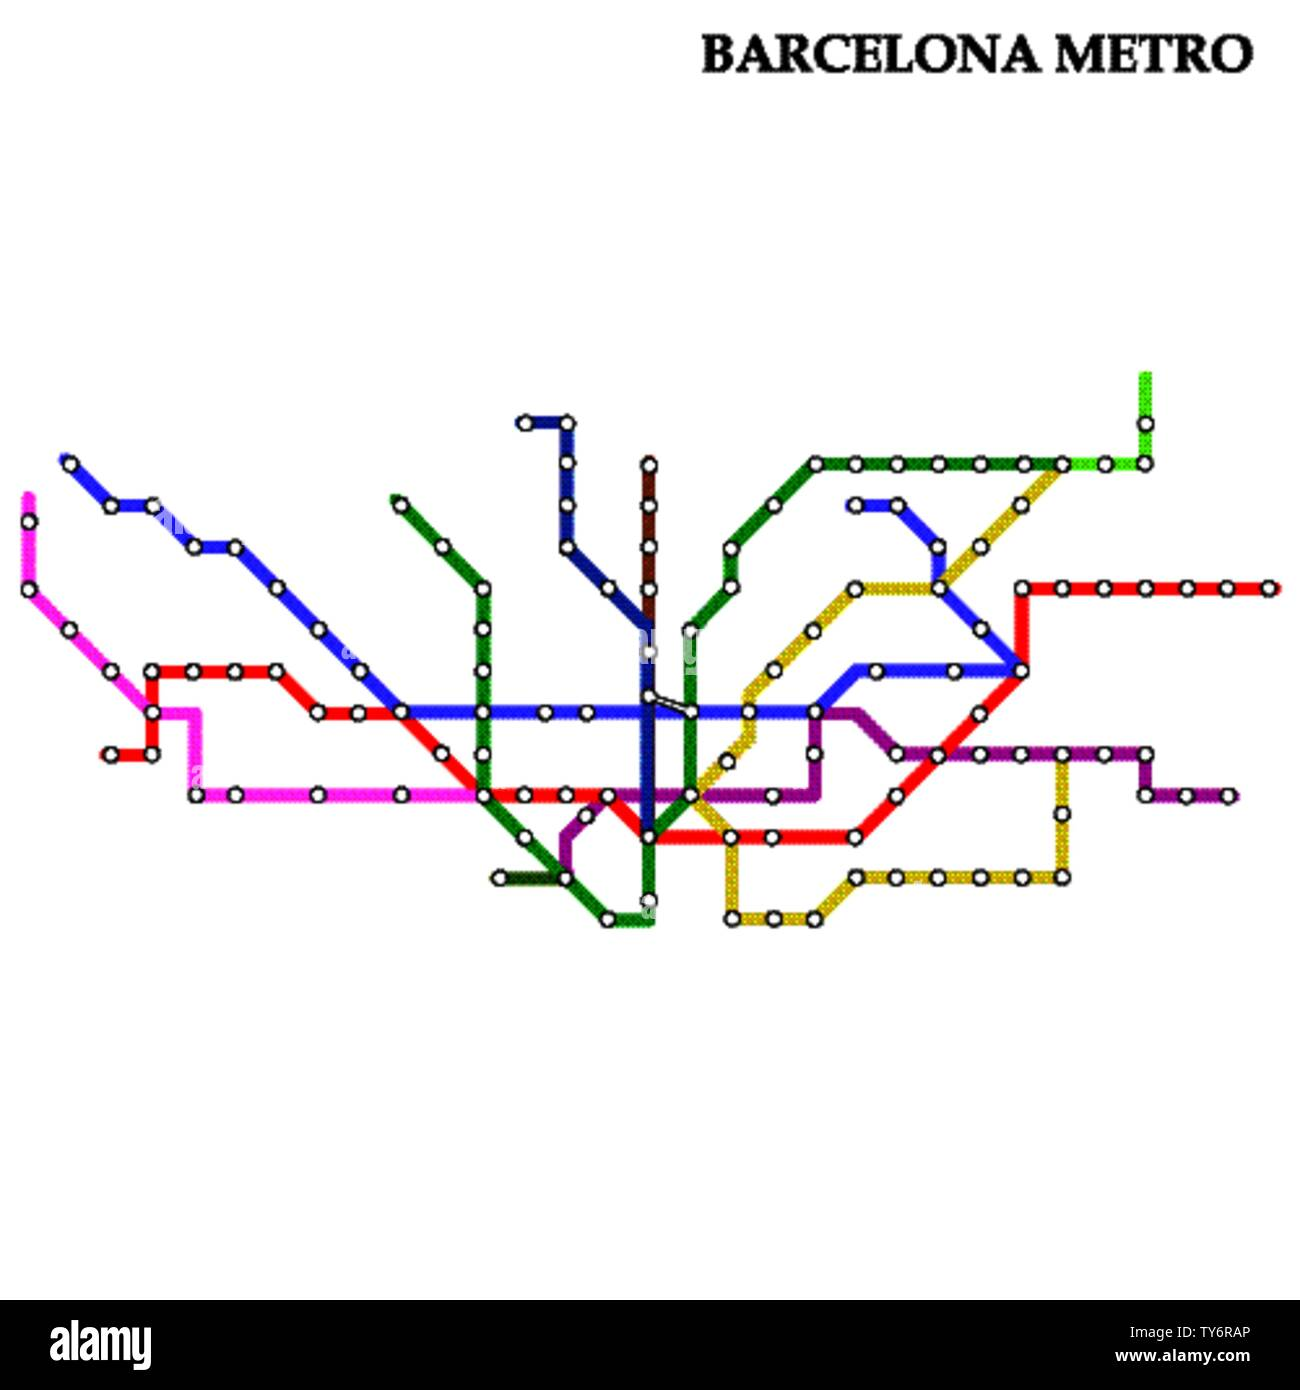 Map of the Barcelona metro, Subway, Template of city transportation scheme for underground road. Stock Vector